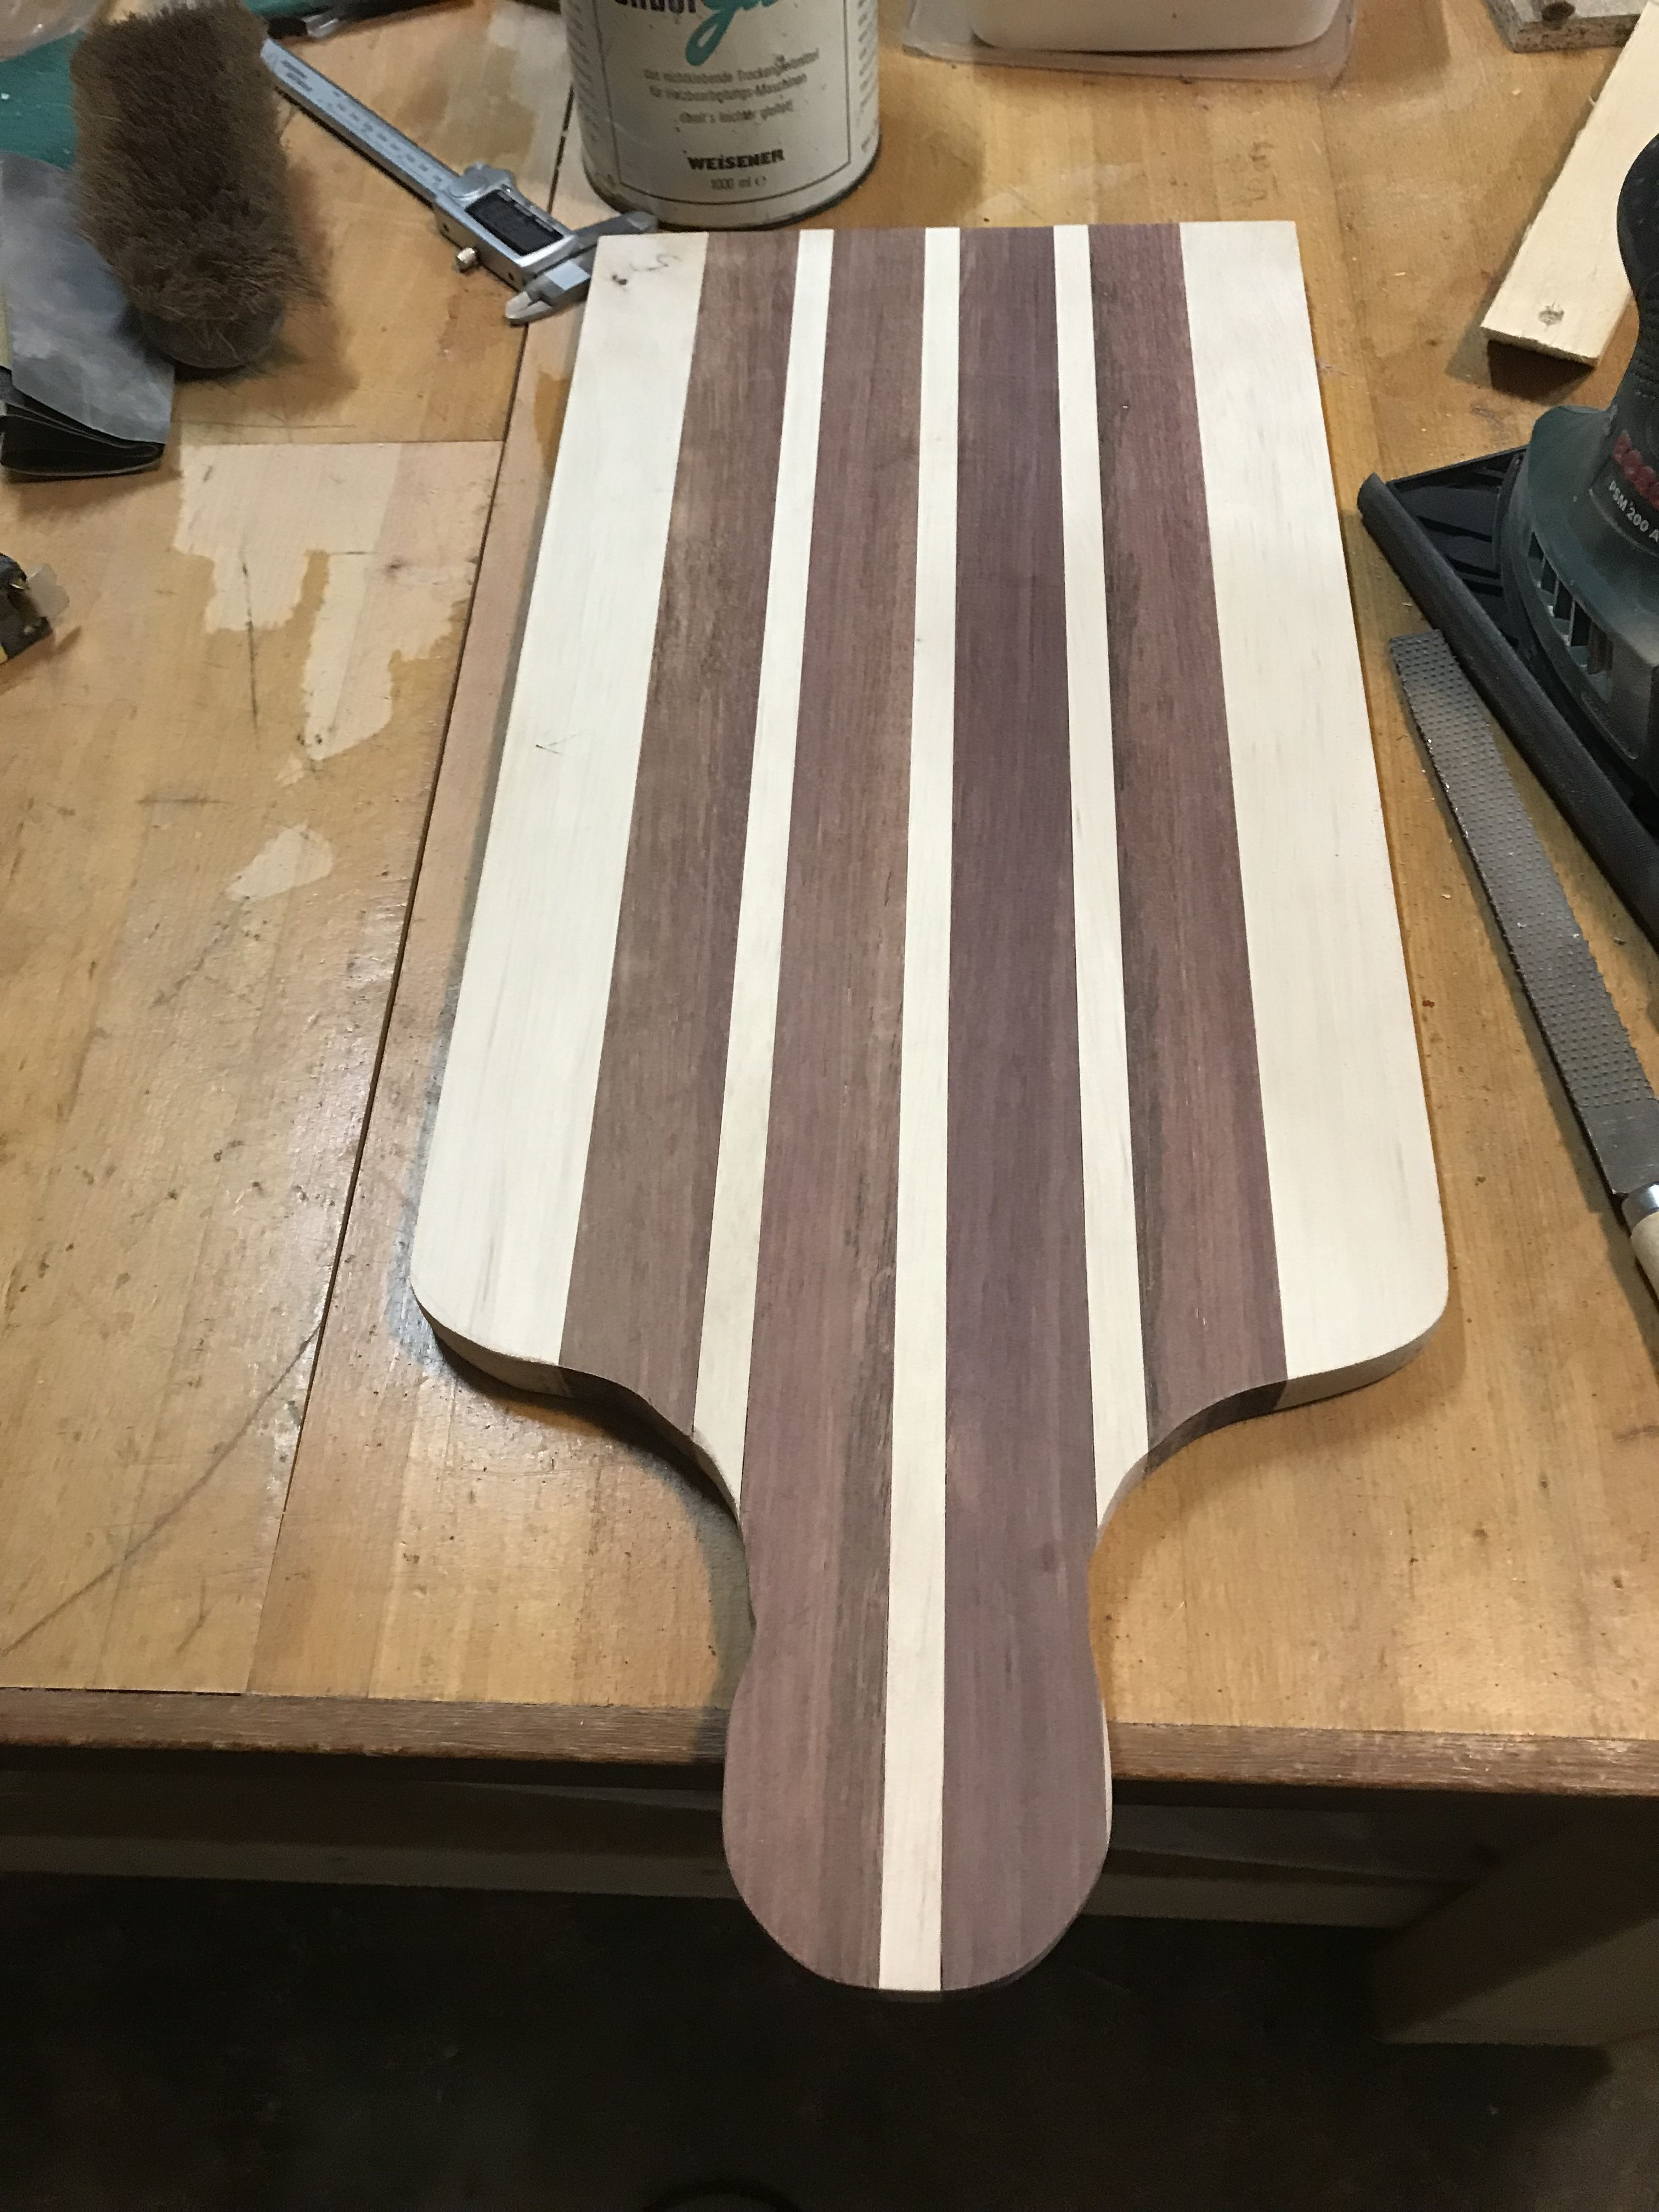 Pin By Ismail Erol On Deano S Boards Wood Woodworking Wood Crafts